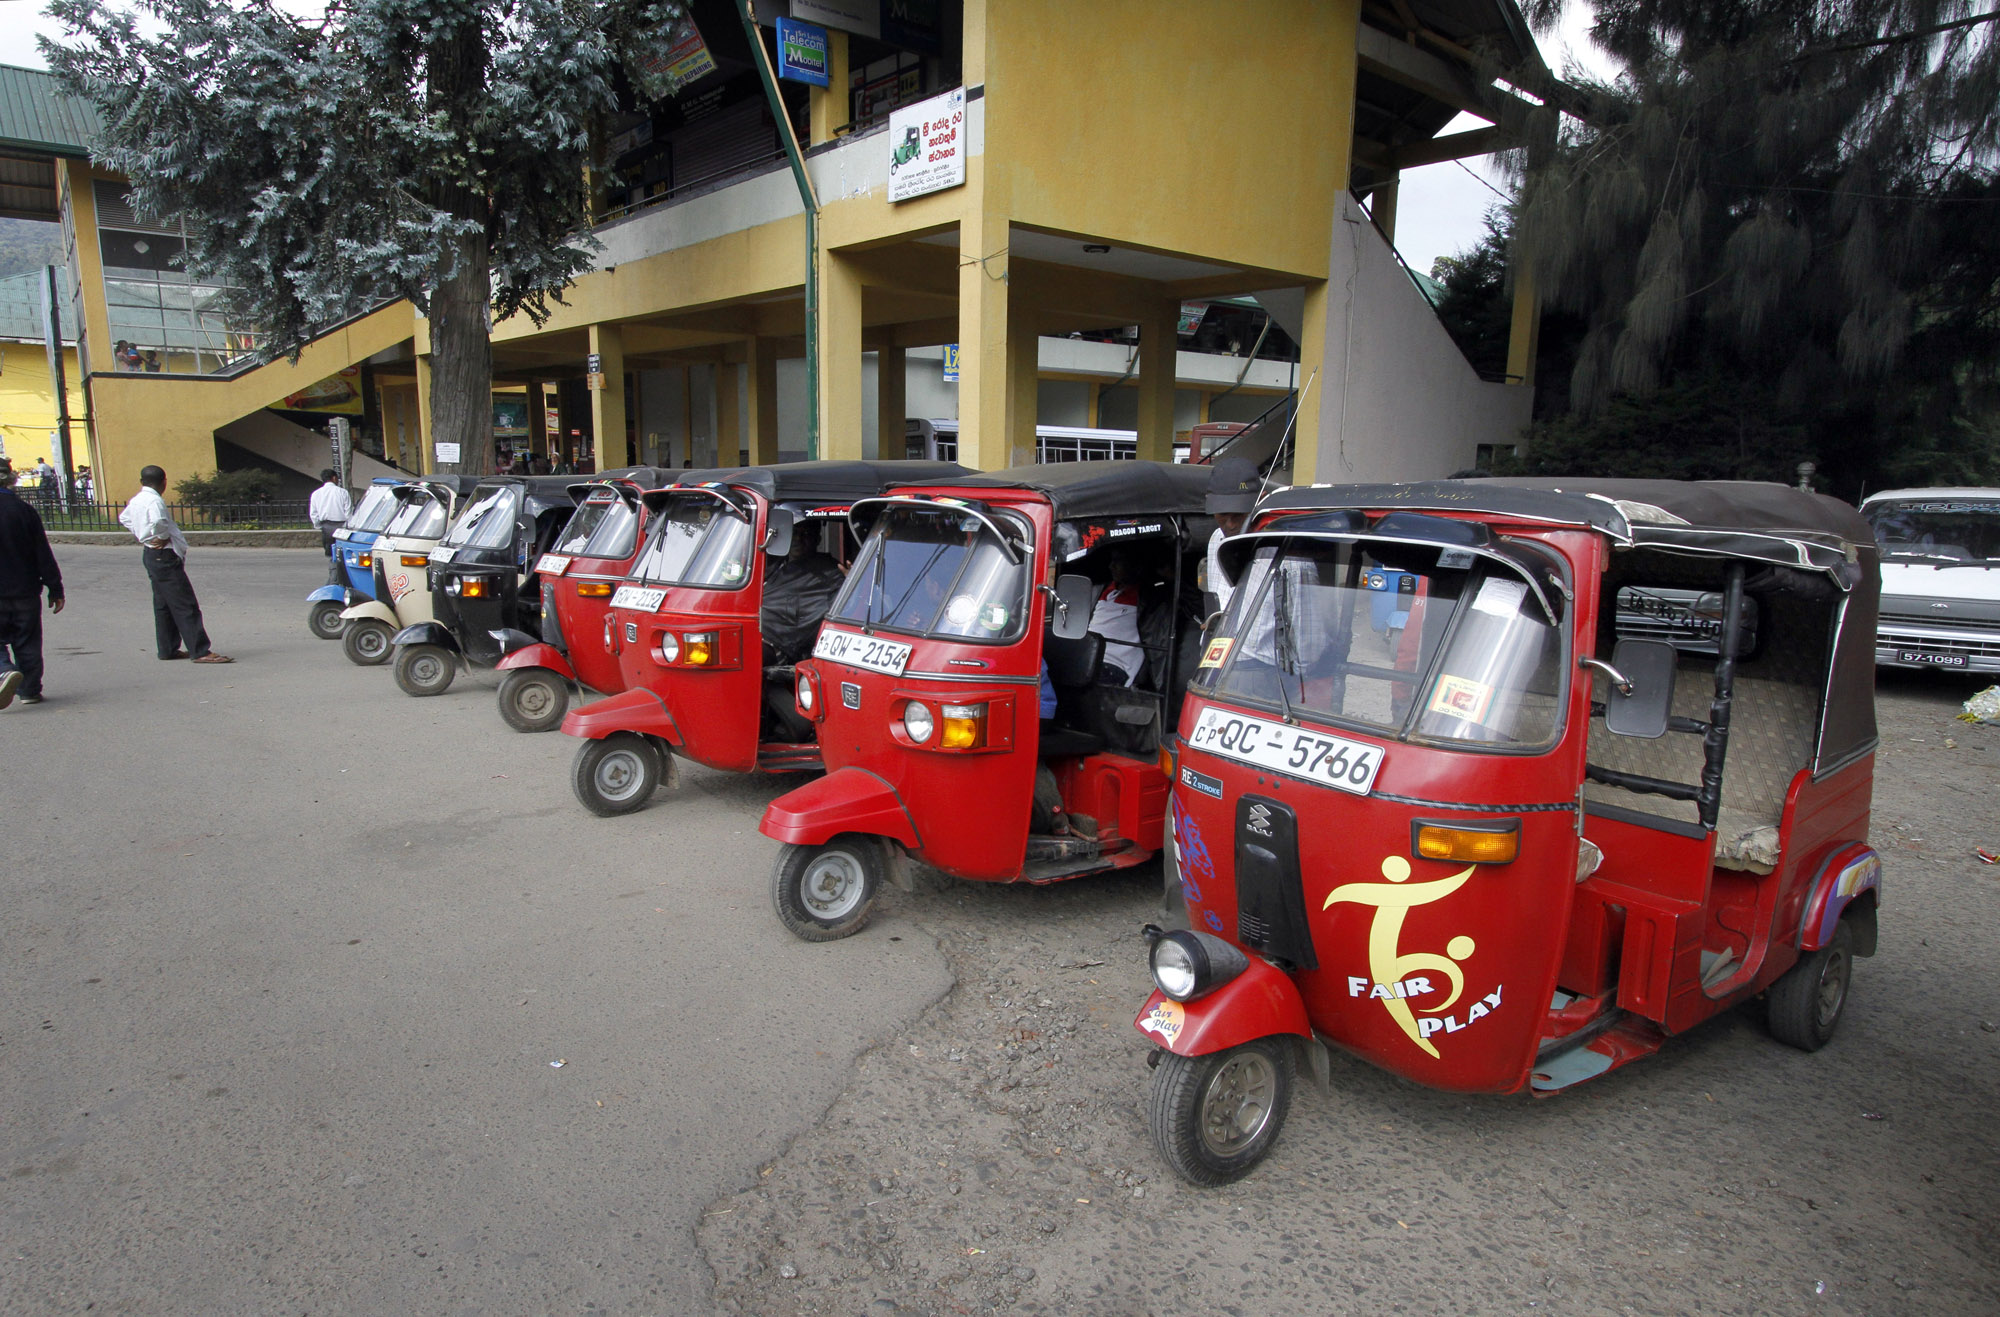 Sri Lanka Tuktuks Straatbeeld Bomen Fair Play